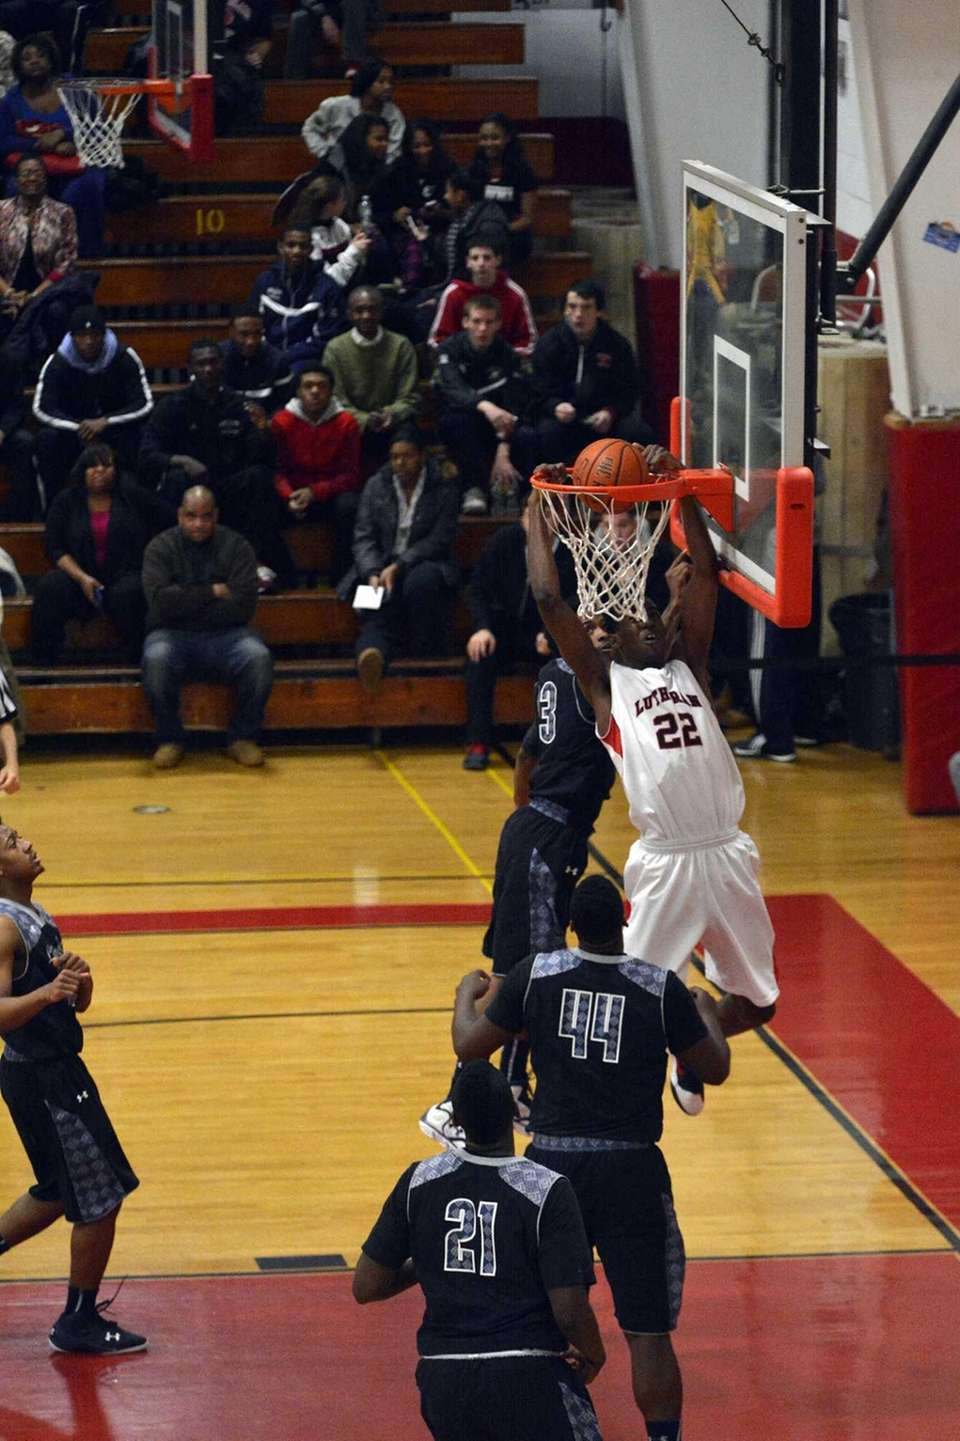 Lutheran forward/center Kentan Facey slam dunks the ball